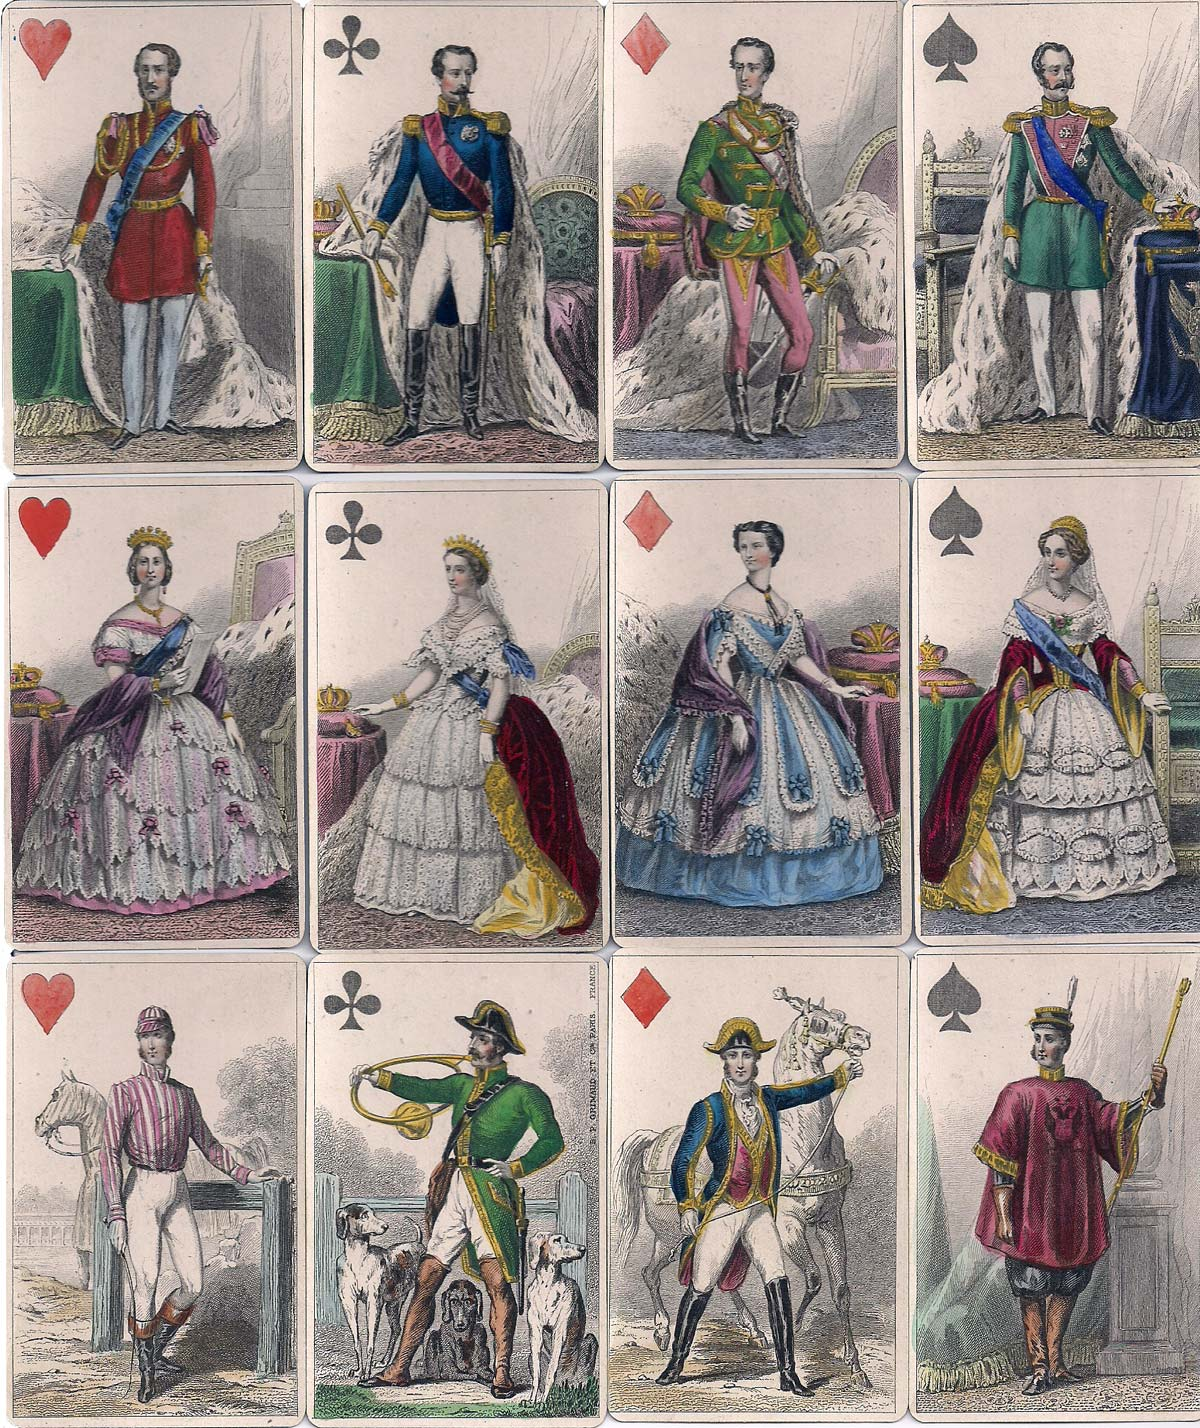 'Cartes Imperiales et Royales' published by B. P. Grimaud & Cie representing imperial rulers and consorts from Austria, England, France & Russia, mid-19th century